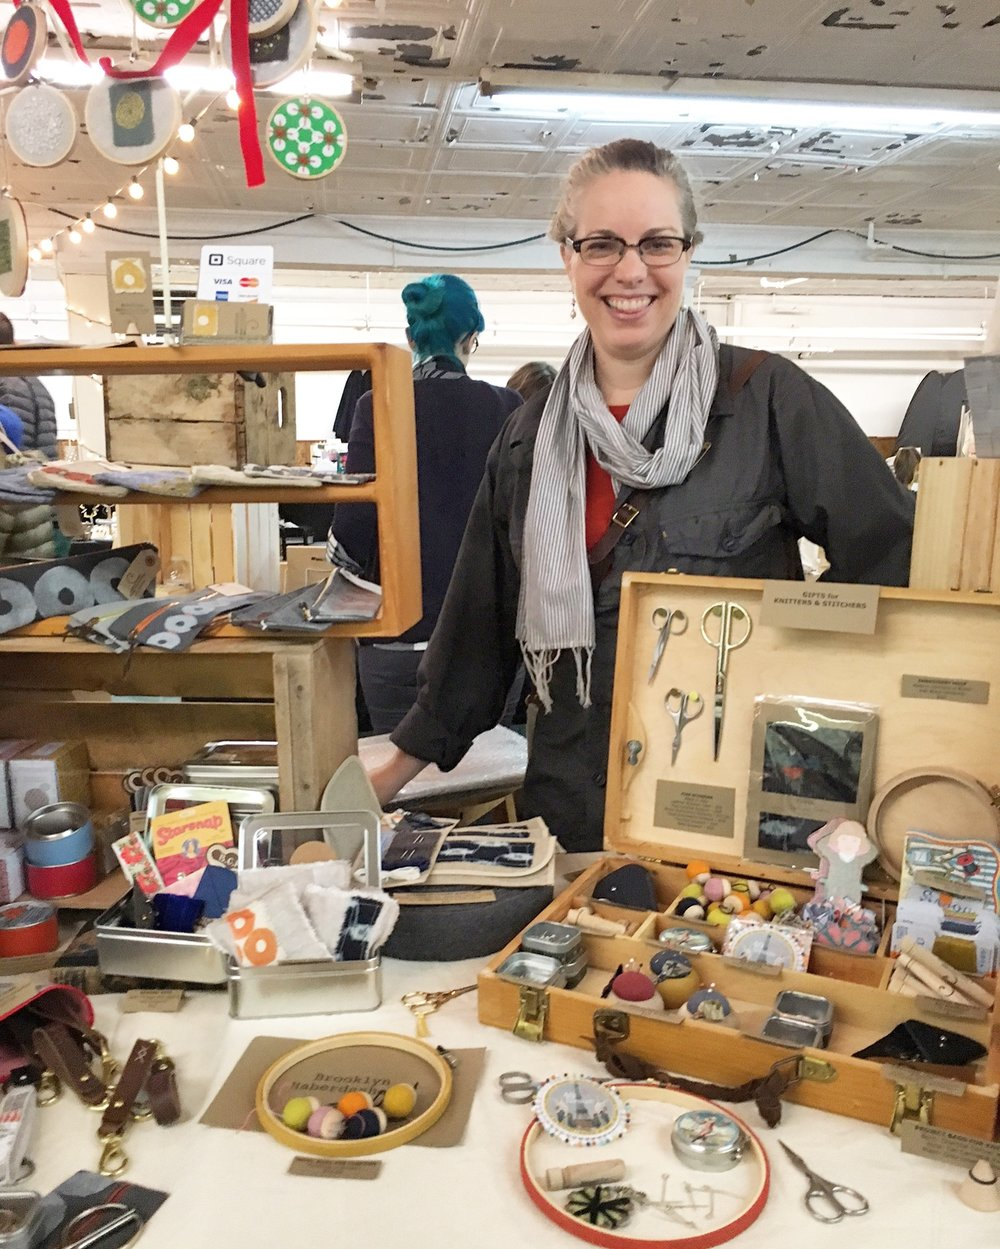 Kristin, Founder + Maker  selling her wares at a pop-up market